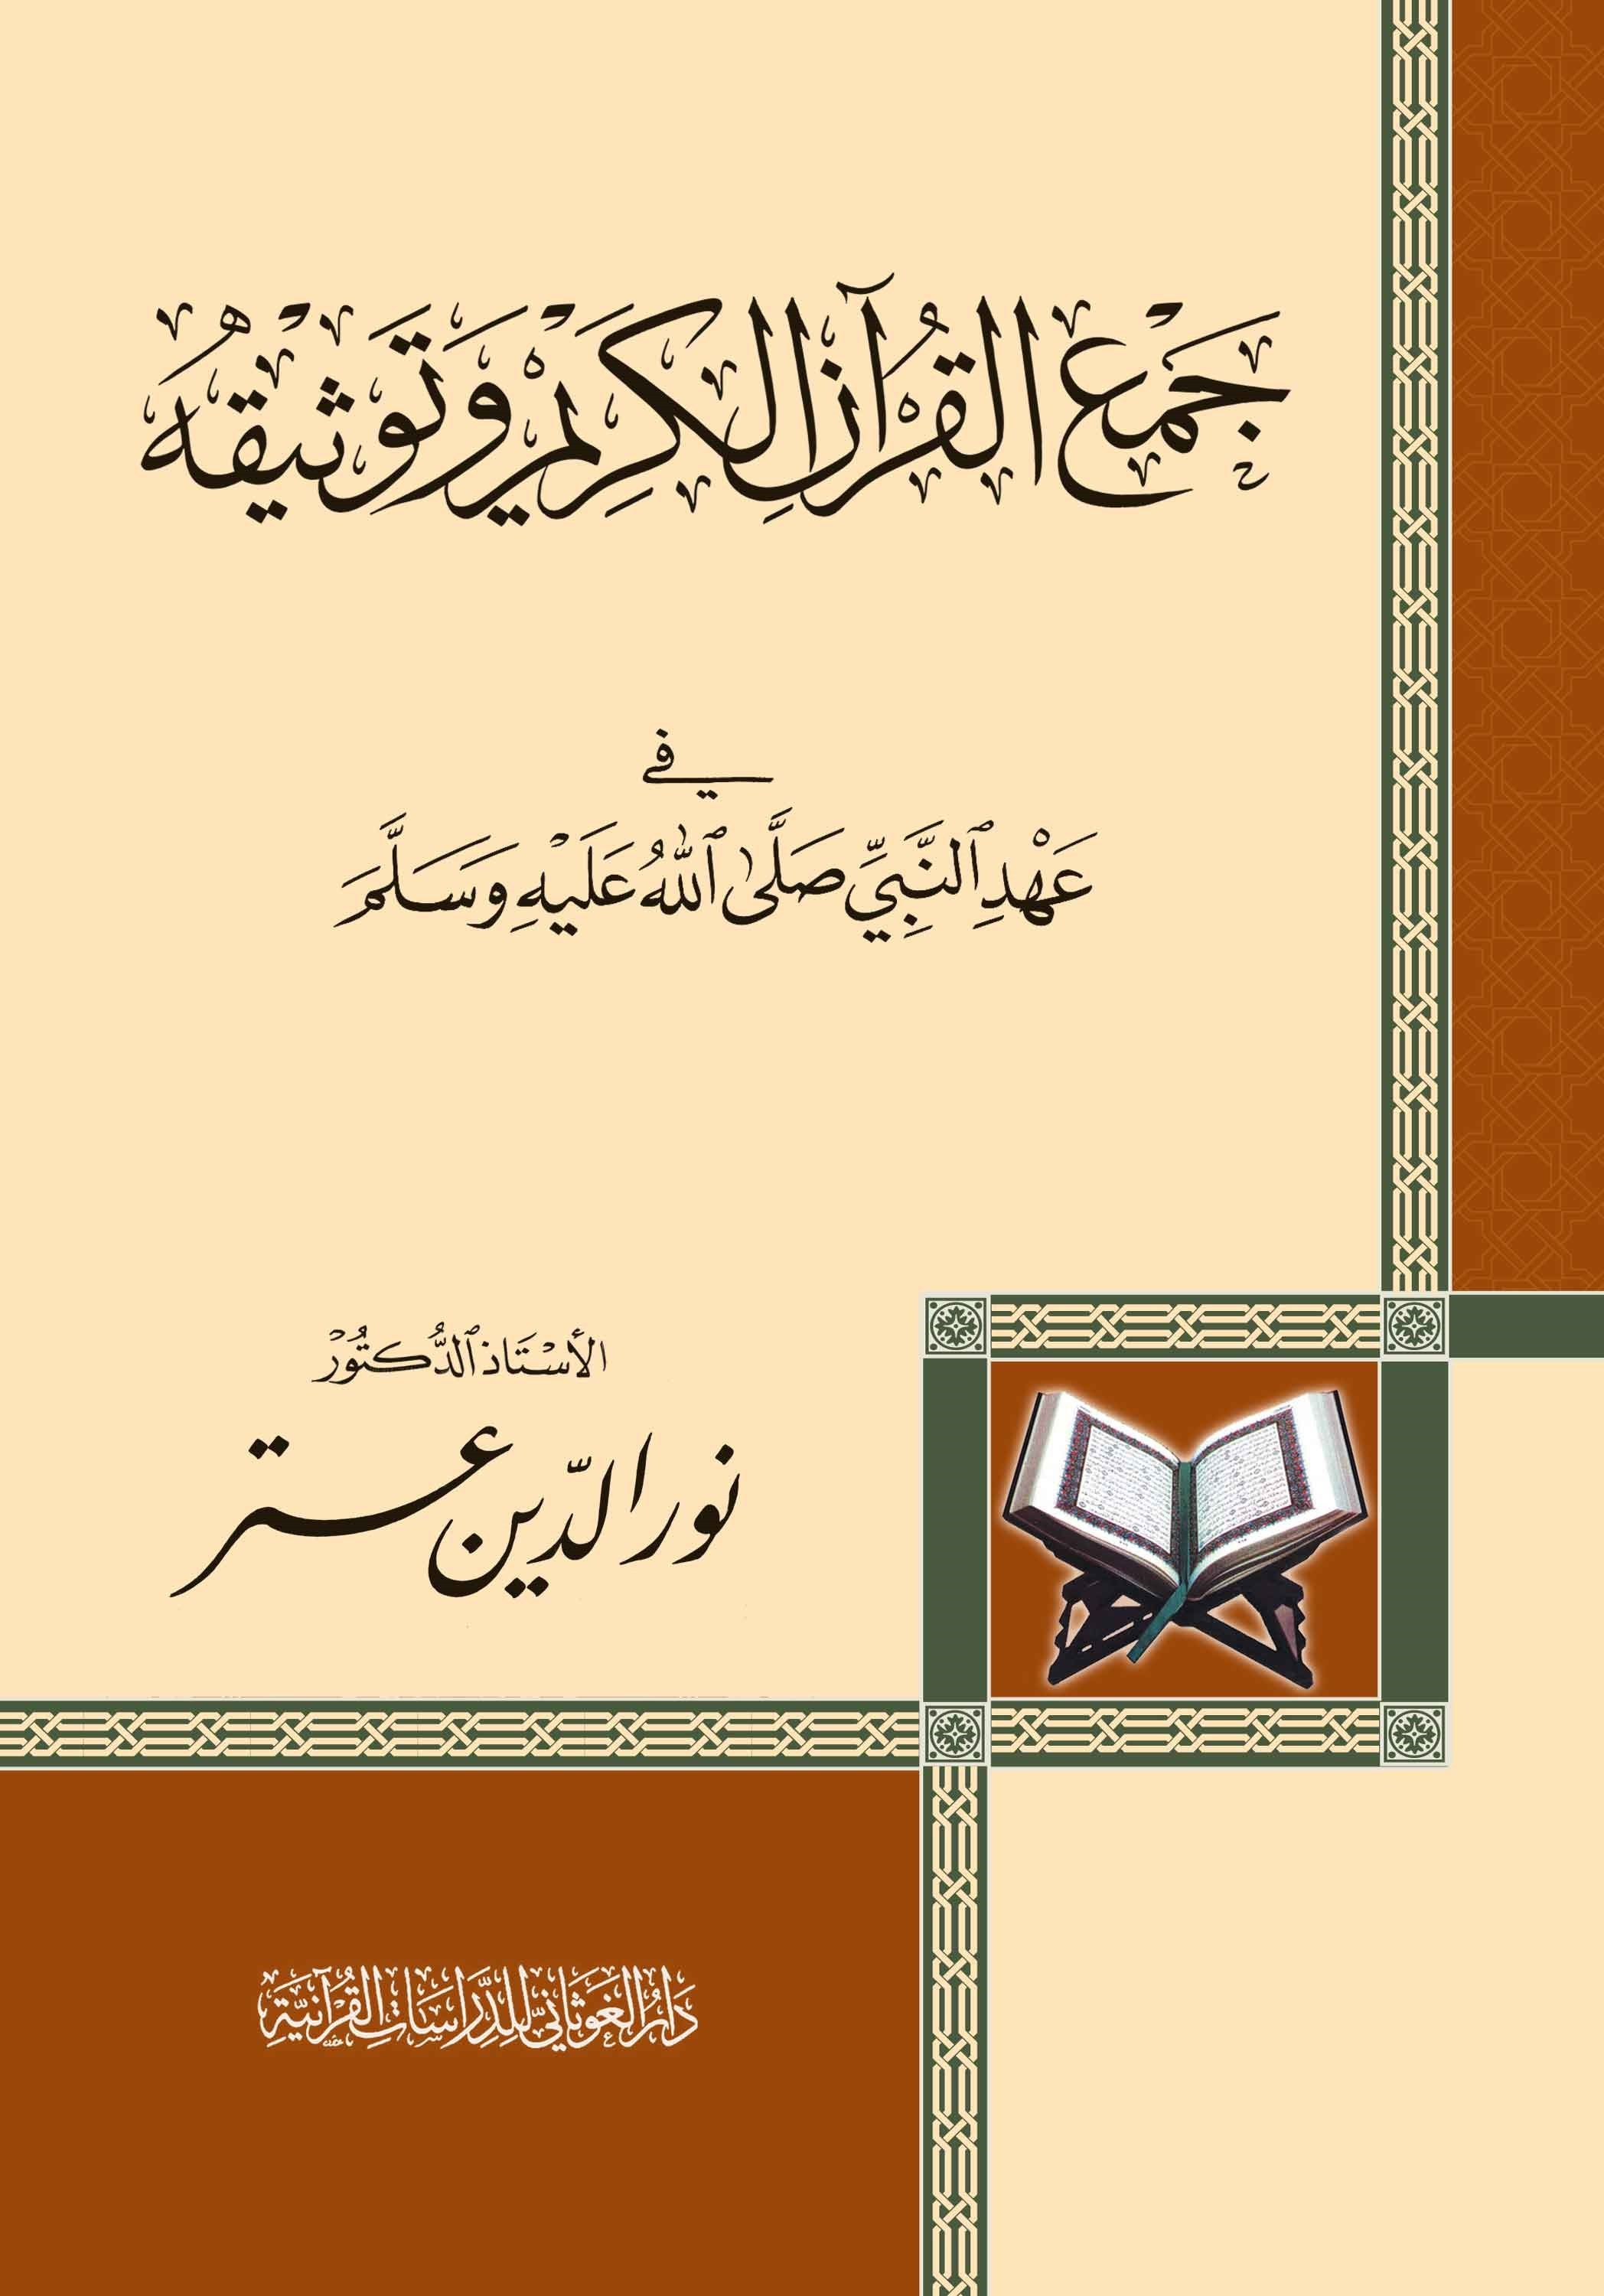 Collecting and Authenticating the Quran in the Time of Prophet Muhammad Peace and Blessings be upon him